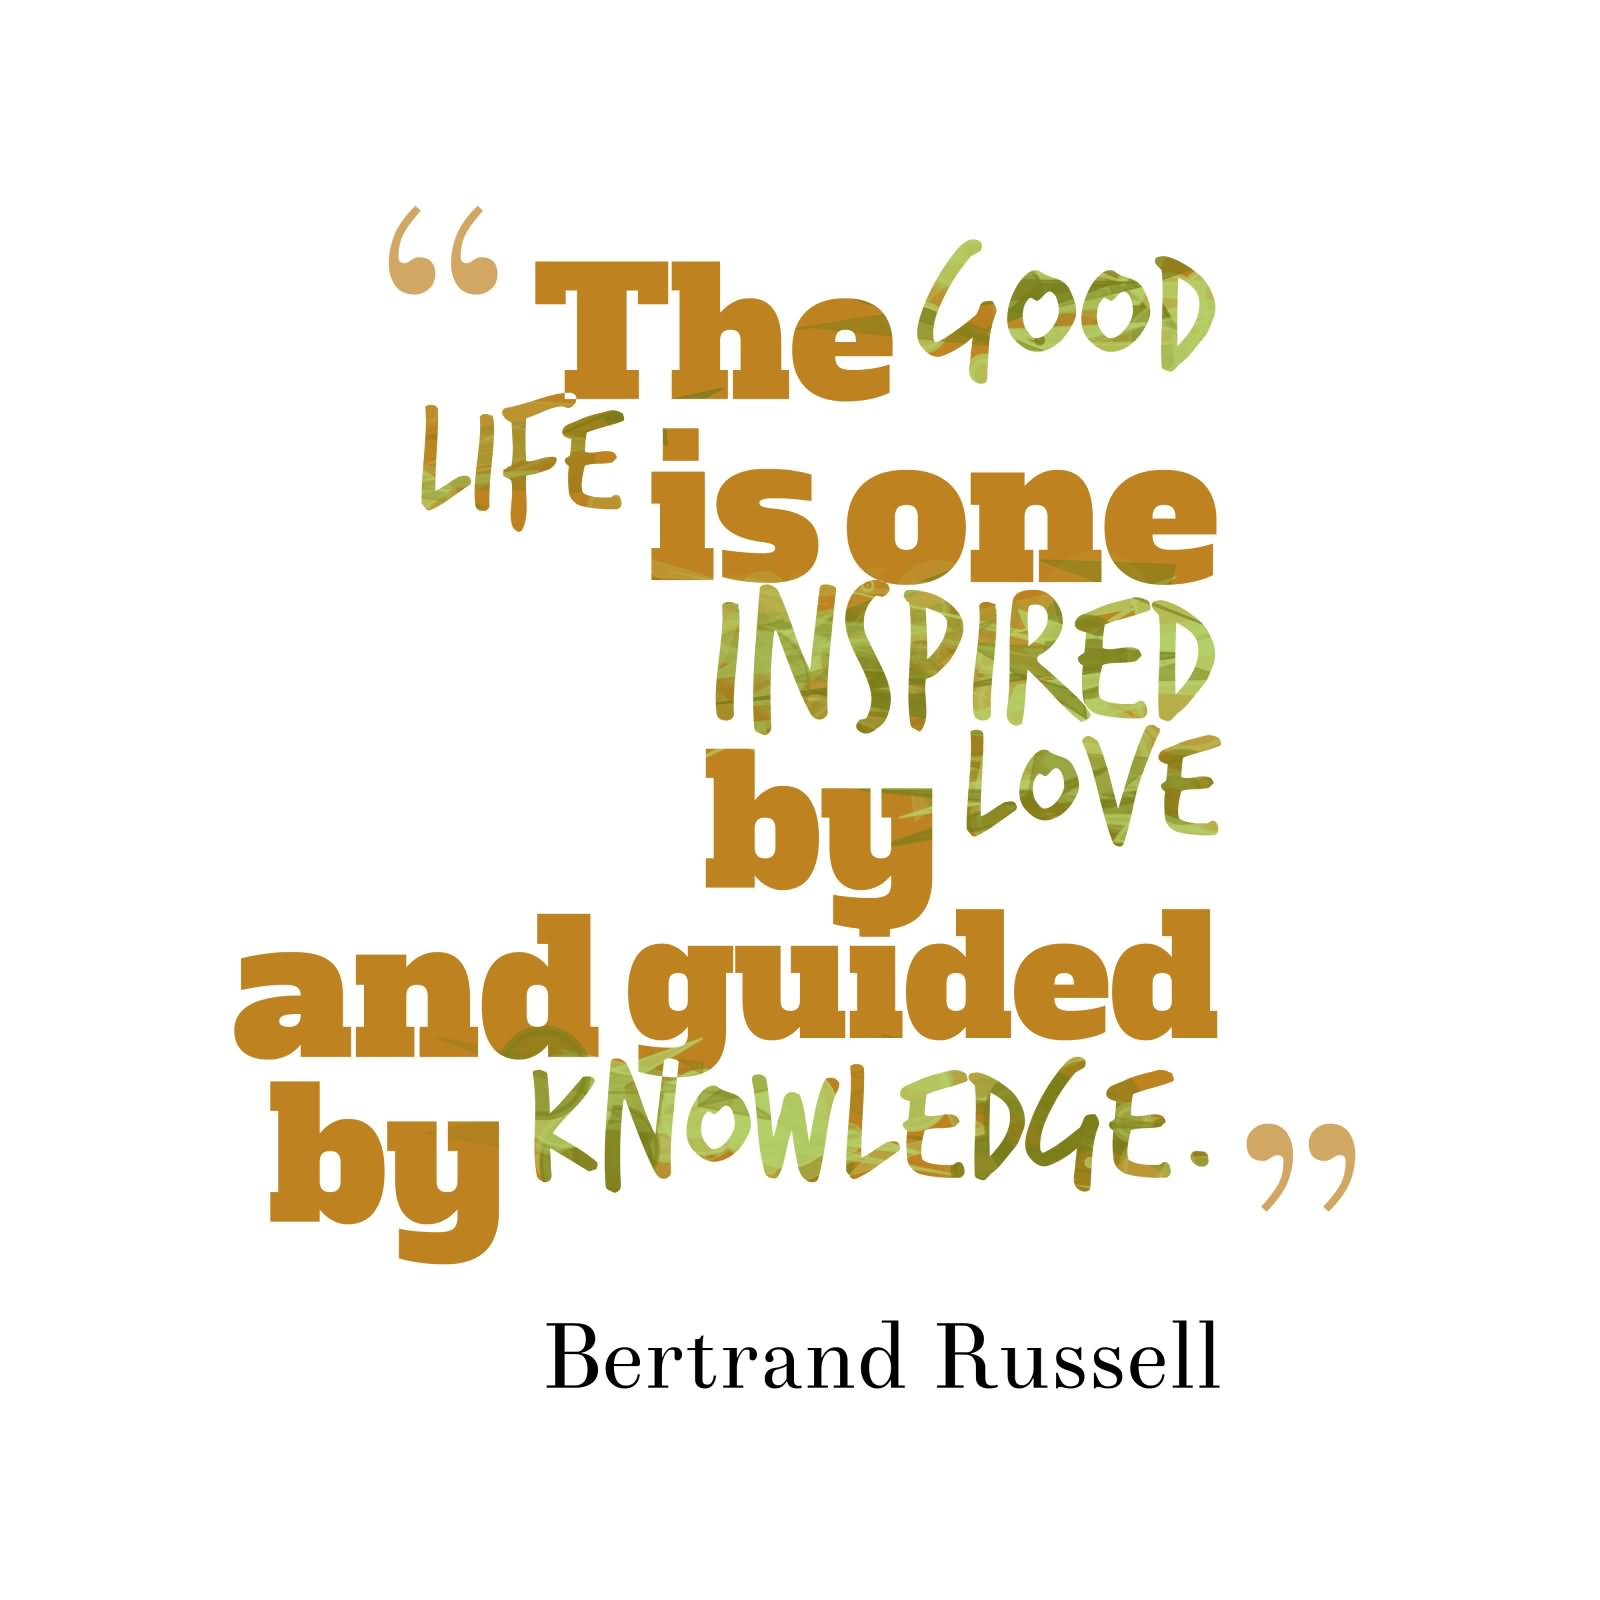 """the good life essay by bertrand russell Russell here's a wonderful quote i ran across this weekend about """"the good life""""  by bertrand russell this quote comes from his essay, what i."""